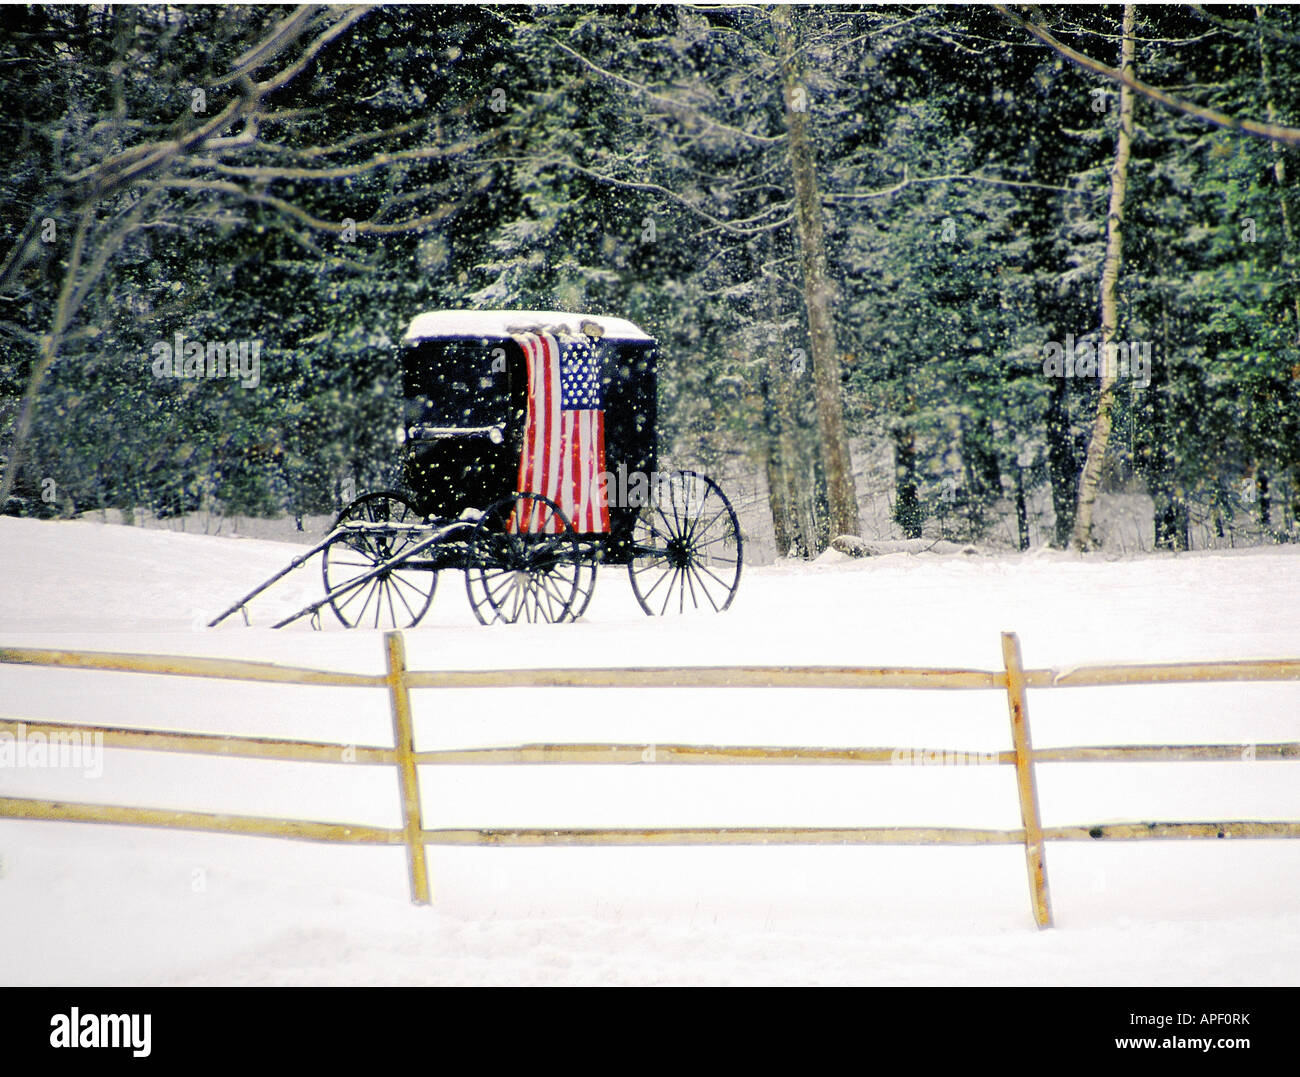 Old fashioned black horse carriage with American flag draped over it in a field of snow with fence (horizontal). - Stock Image